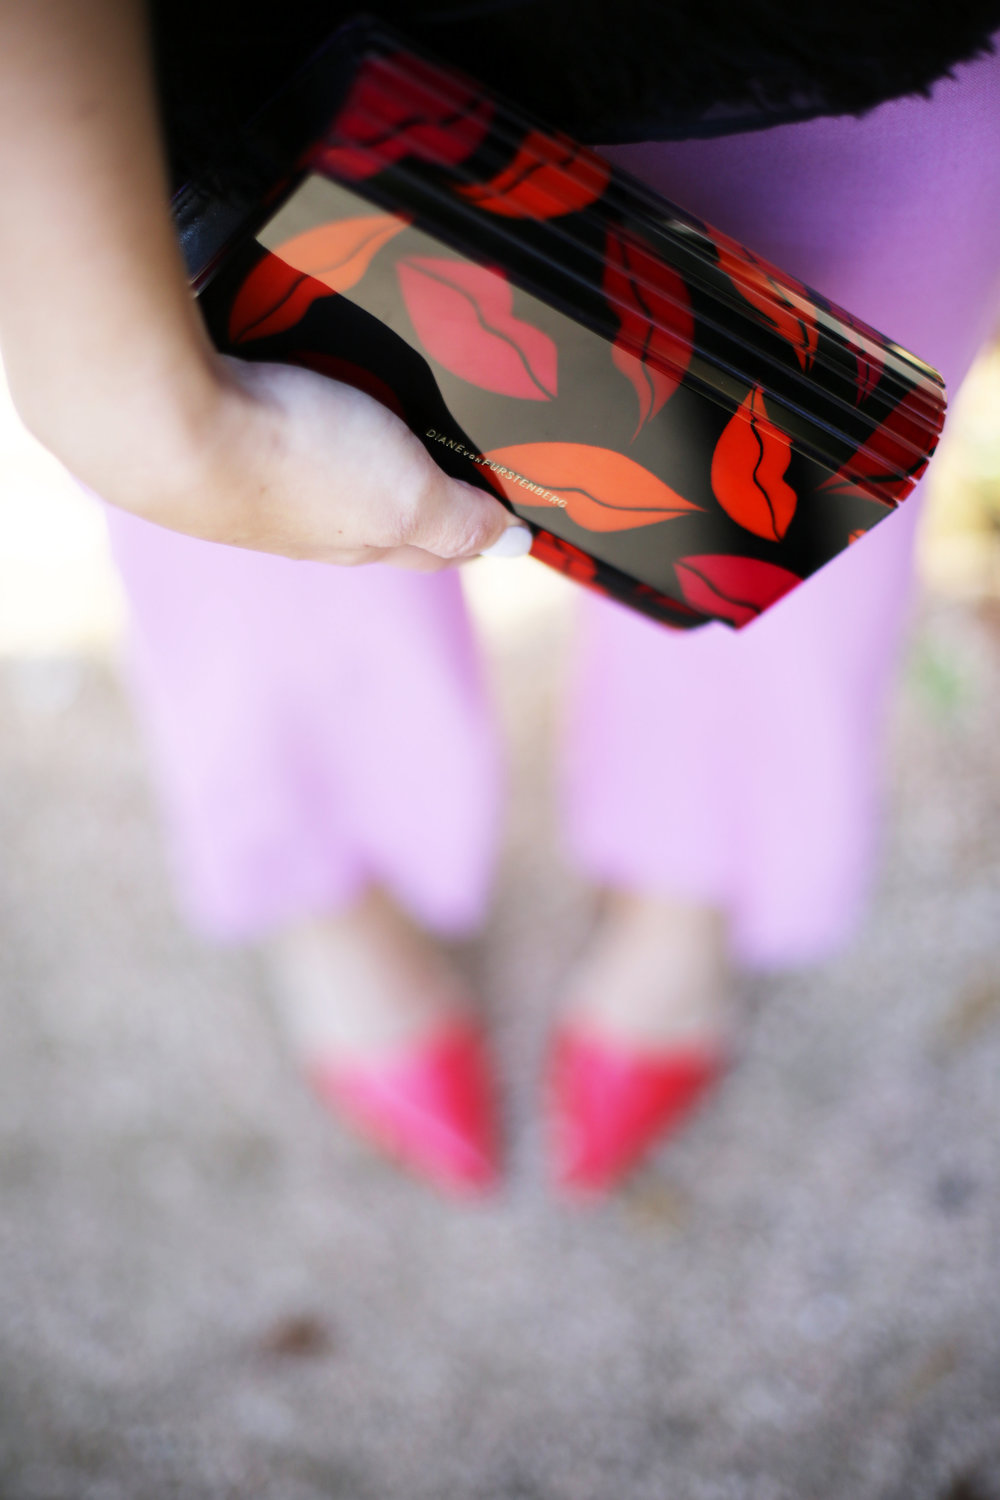 J.Crew Pink pants, hunter bell fringe top, red shiny ponies and DVF lip clutch. Valentine's Day Fashion 3.jpg